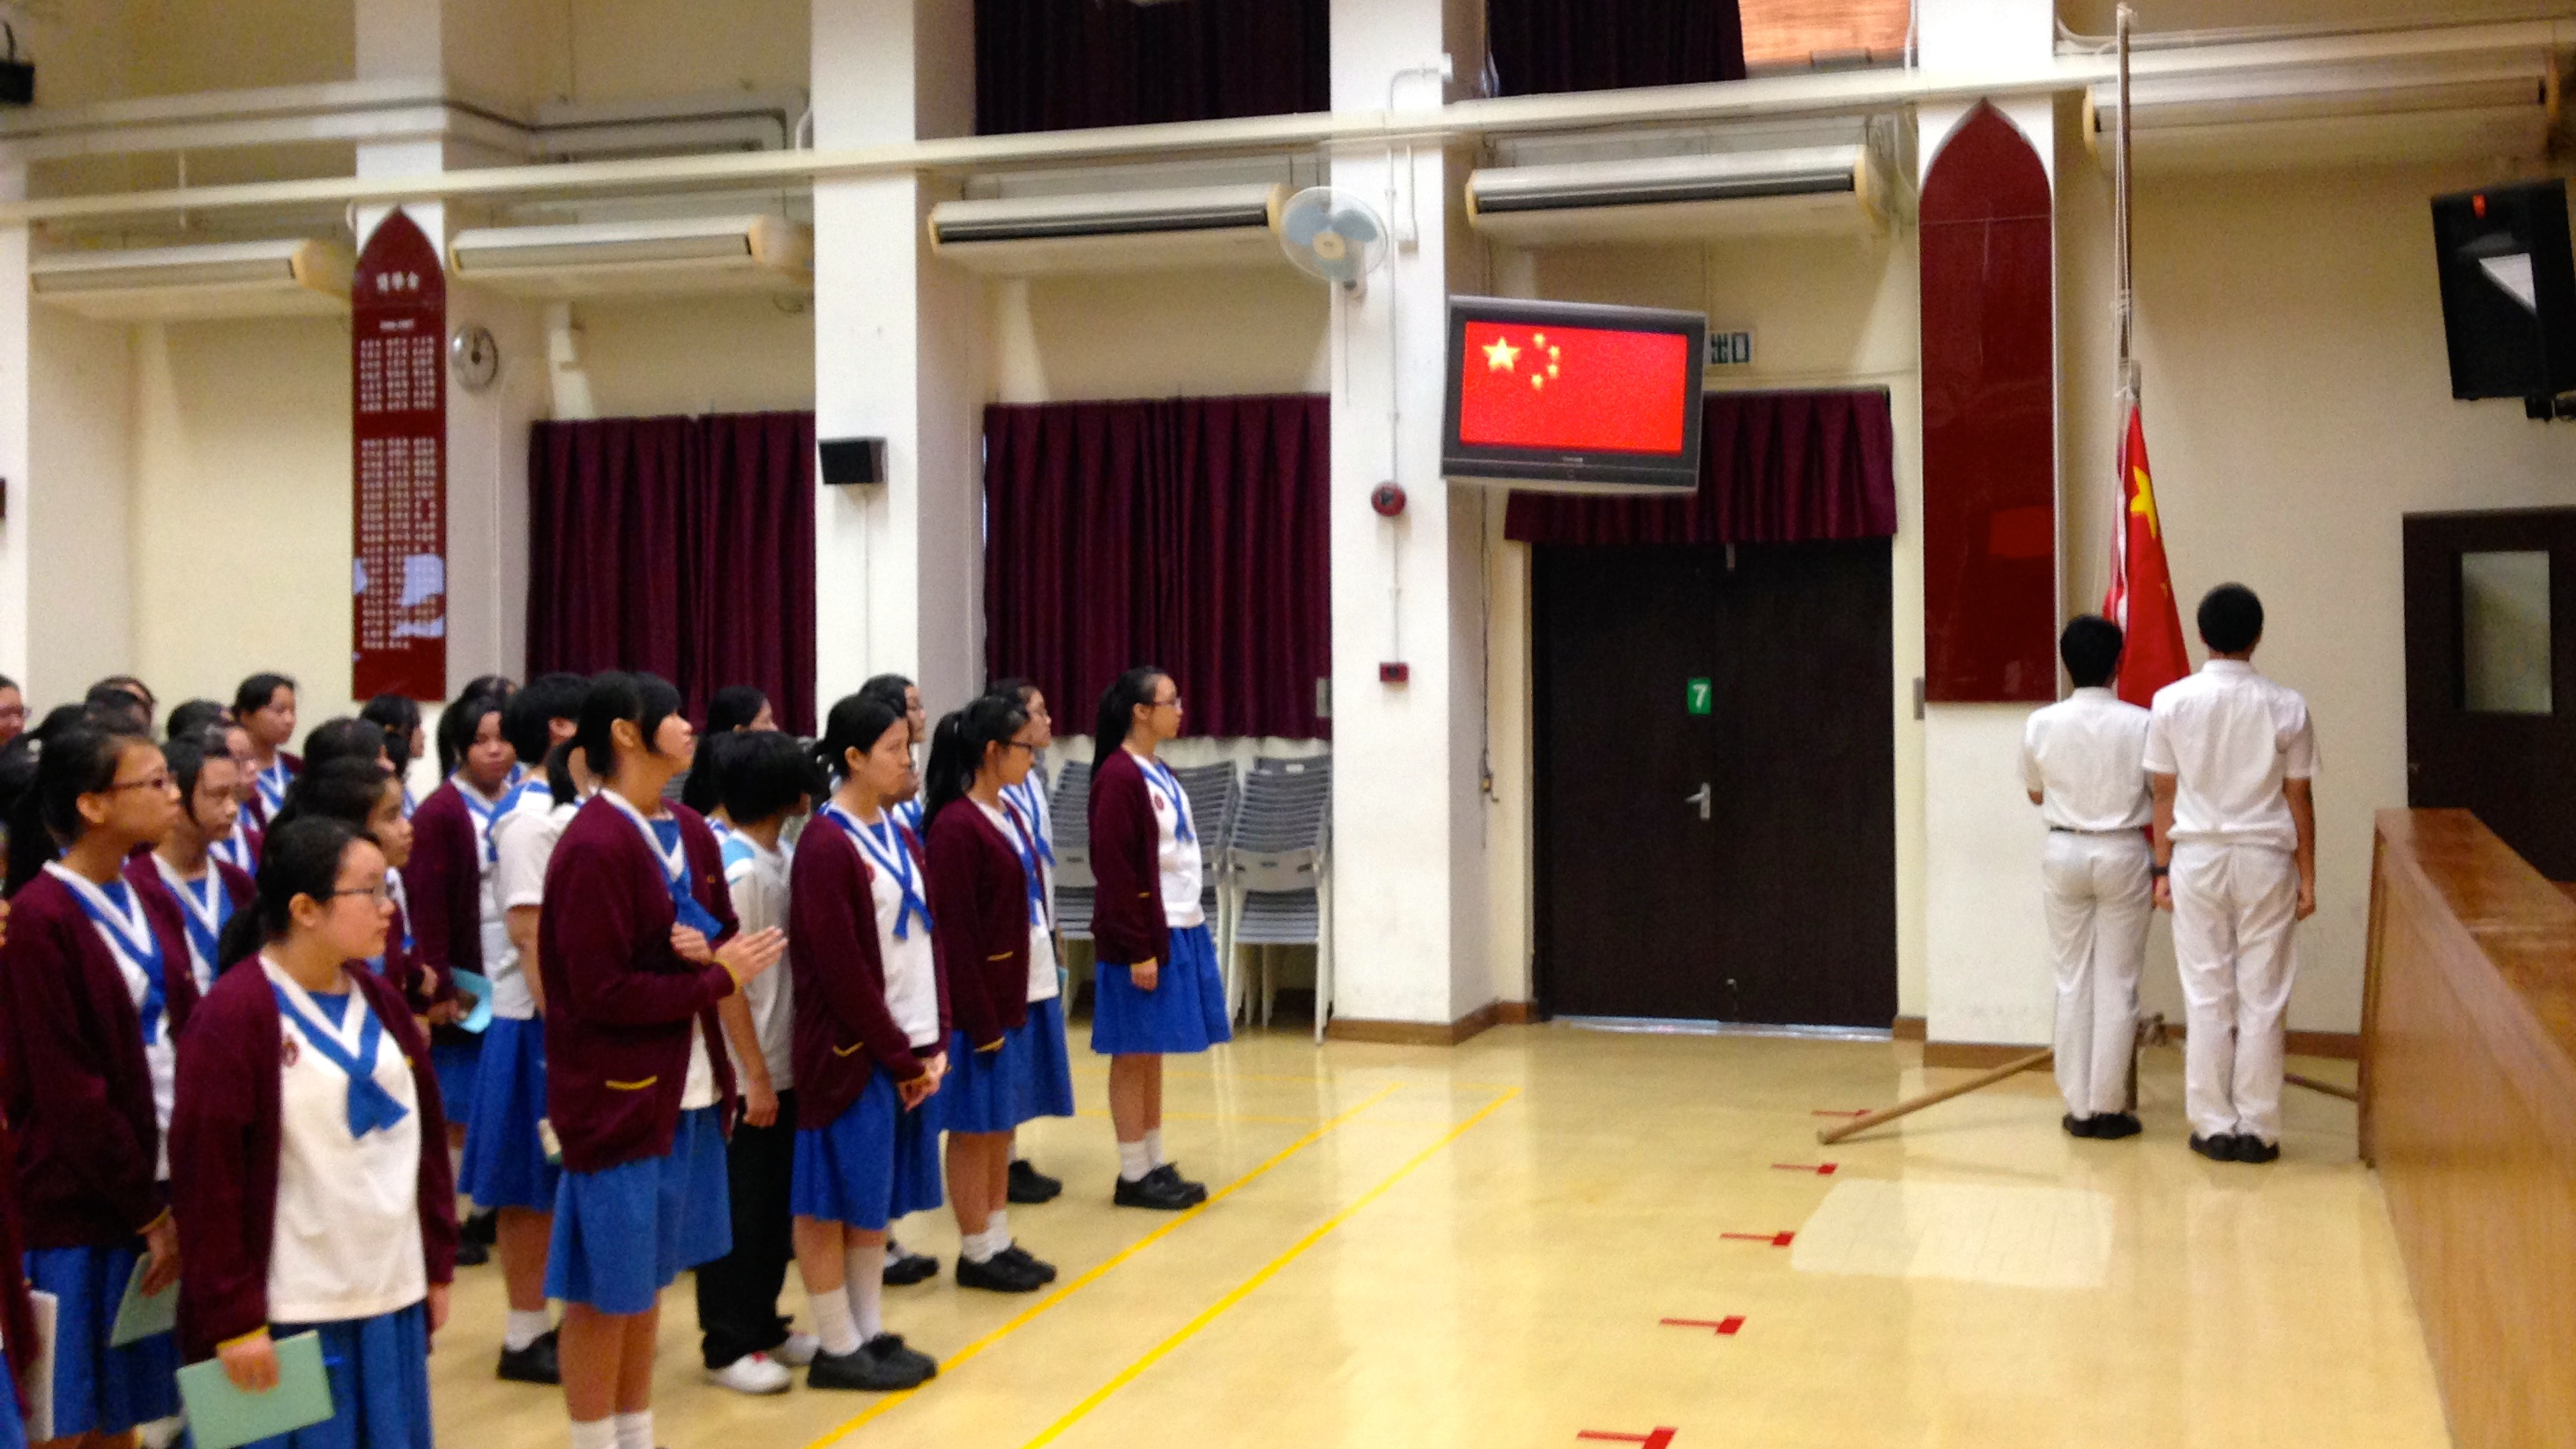 Middle school students at Lee Kau Yan Memorial School participate in a flag-raising ceremony.